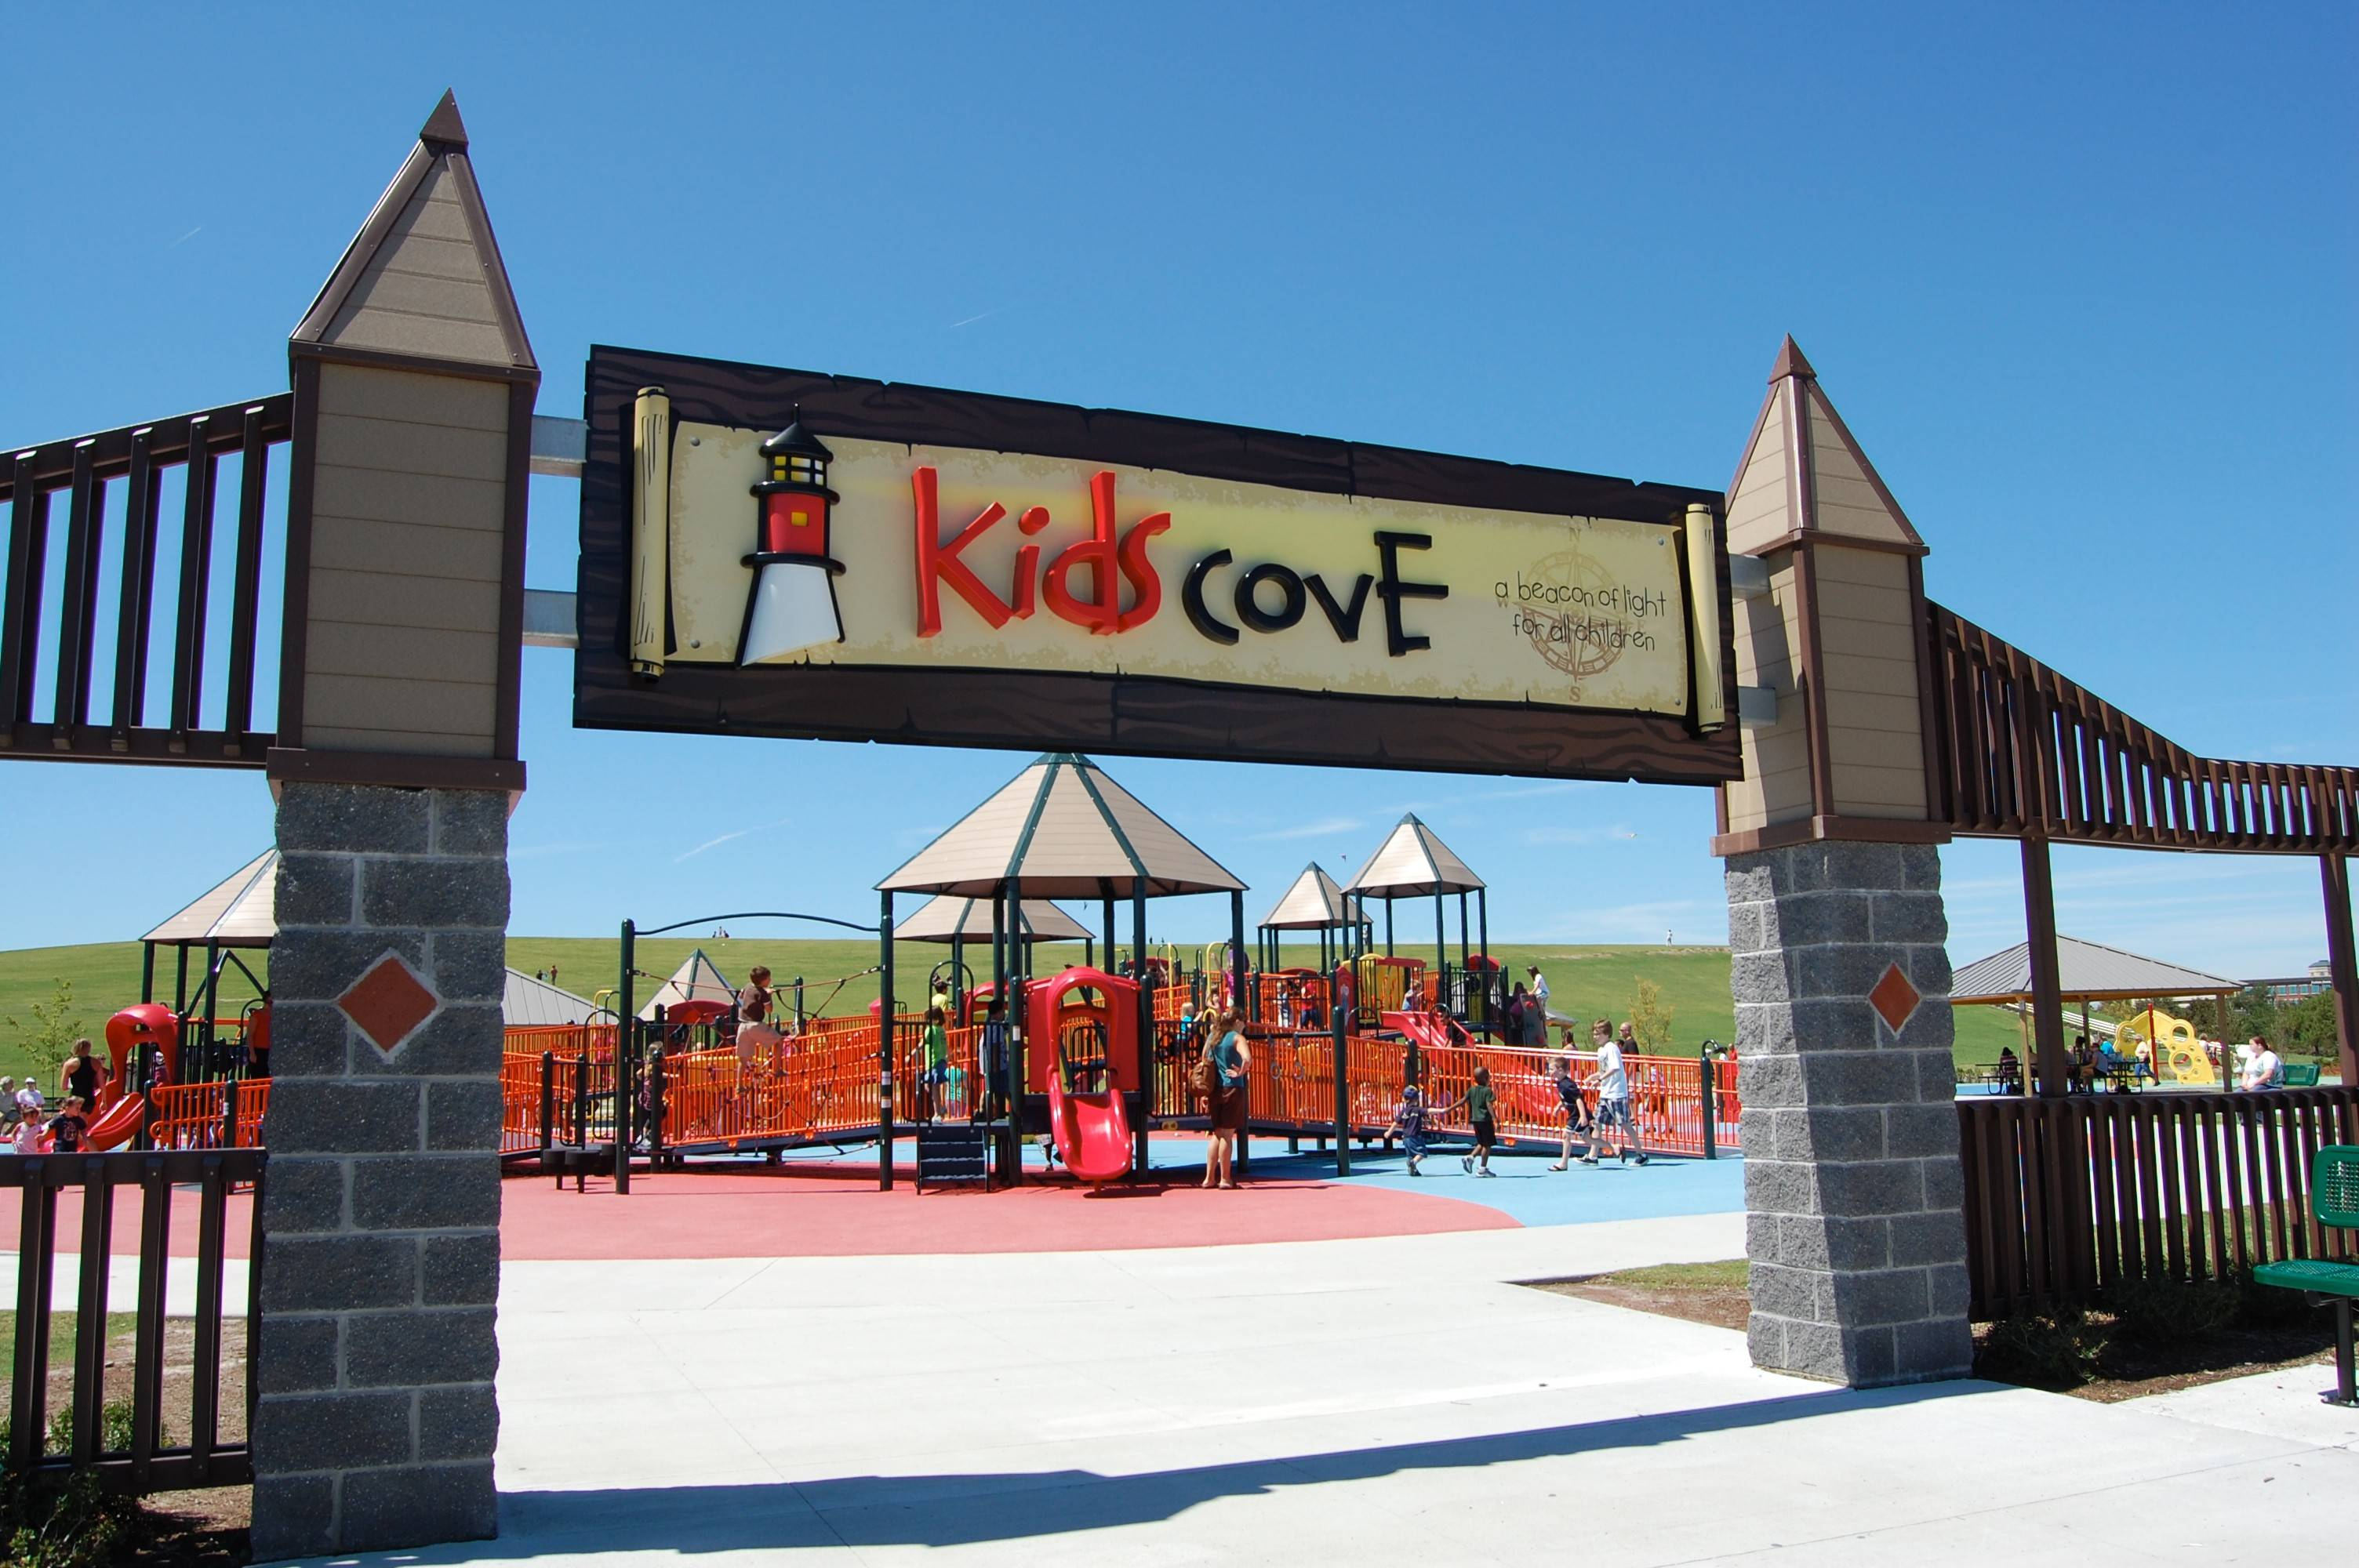 The Kids Cove playground is just one feature at Mount Trashmore, which is a park built on a former landfill that has two man-made mountains, two lakes, a skate park and paths. It's one of a number of free places to visit in Virginia Beach.